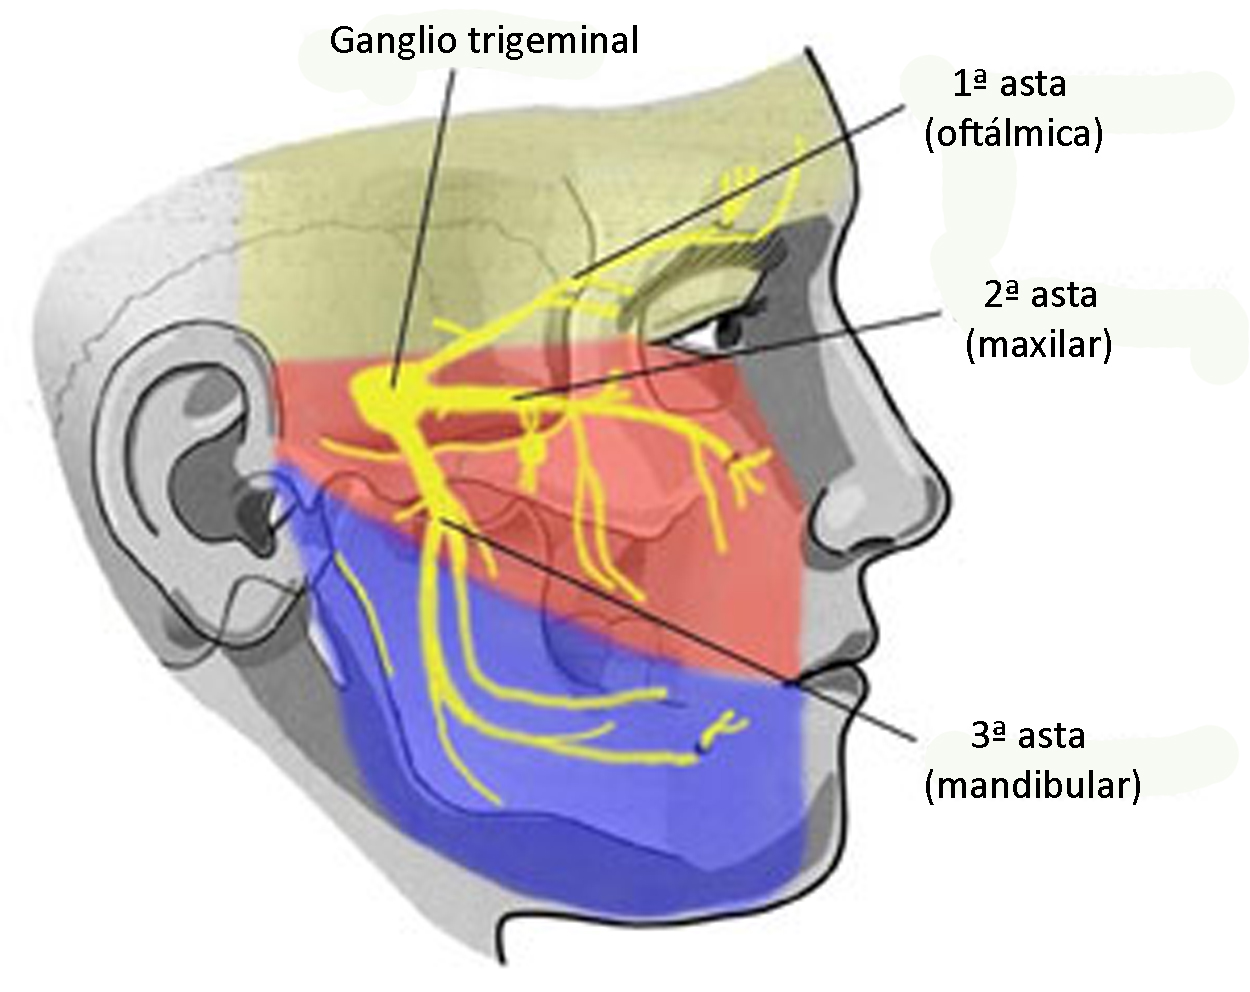 living in well being iamge showing the part of the face in which neuralgias occur